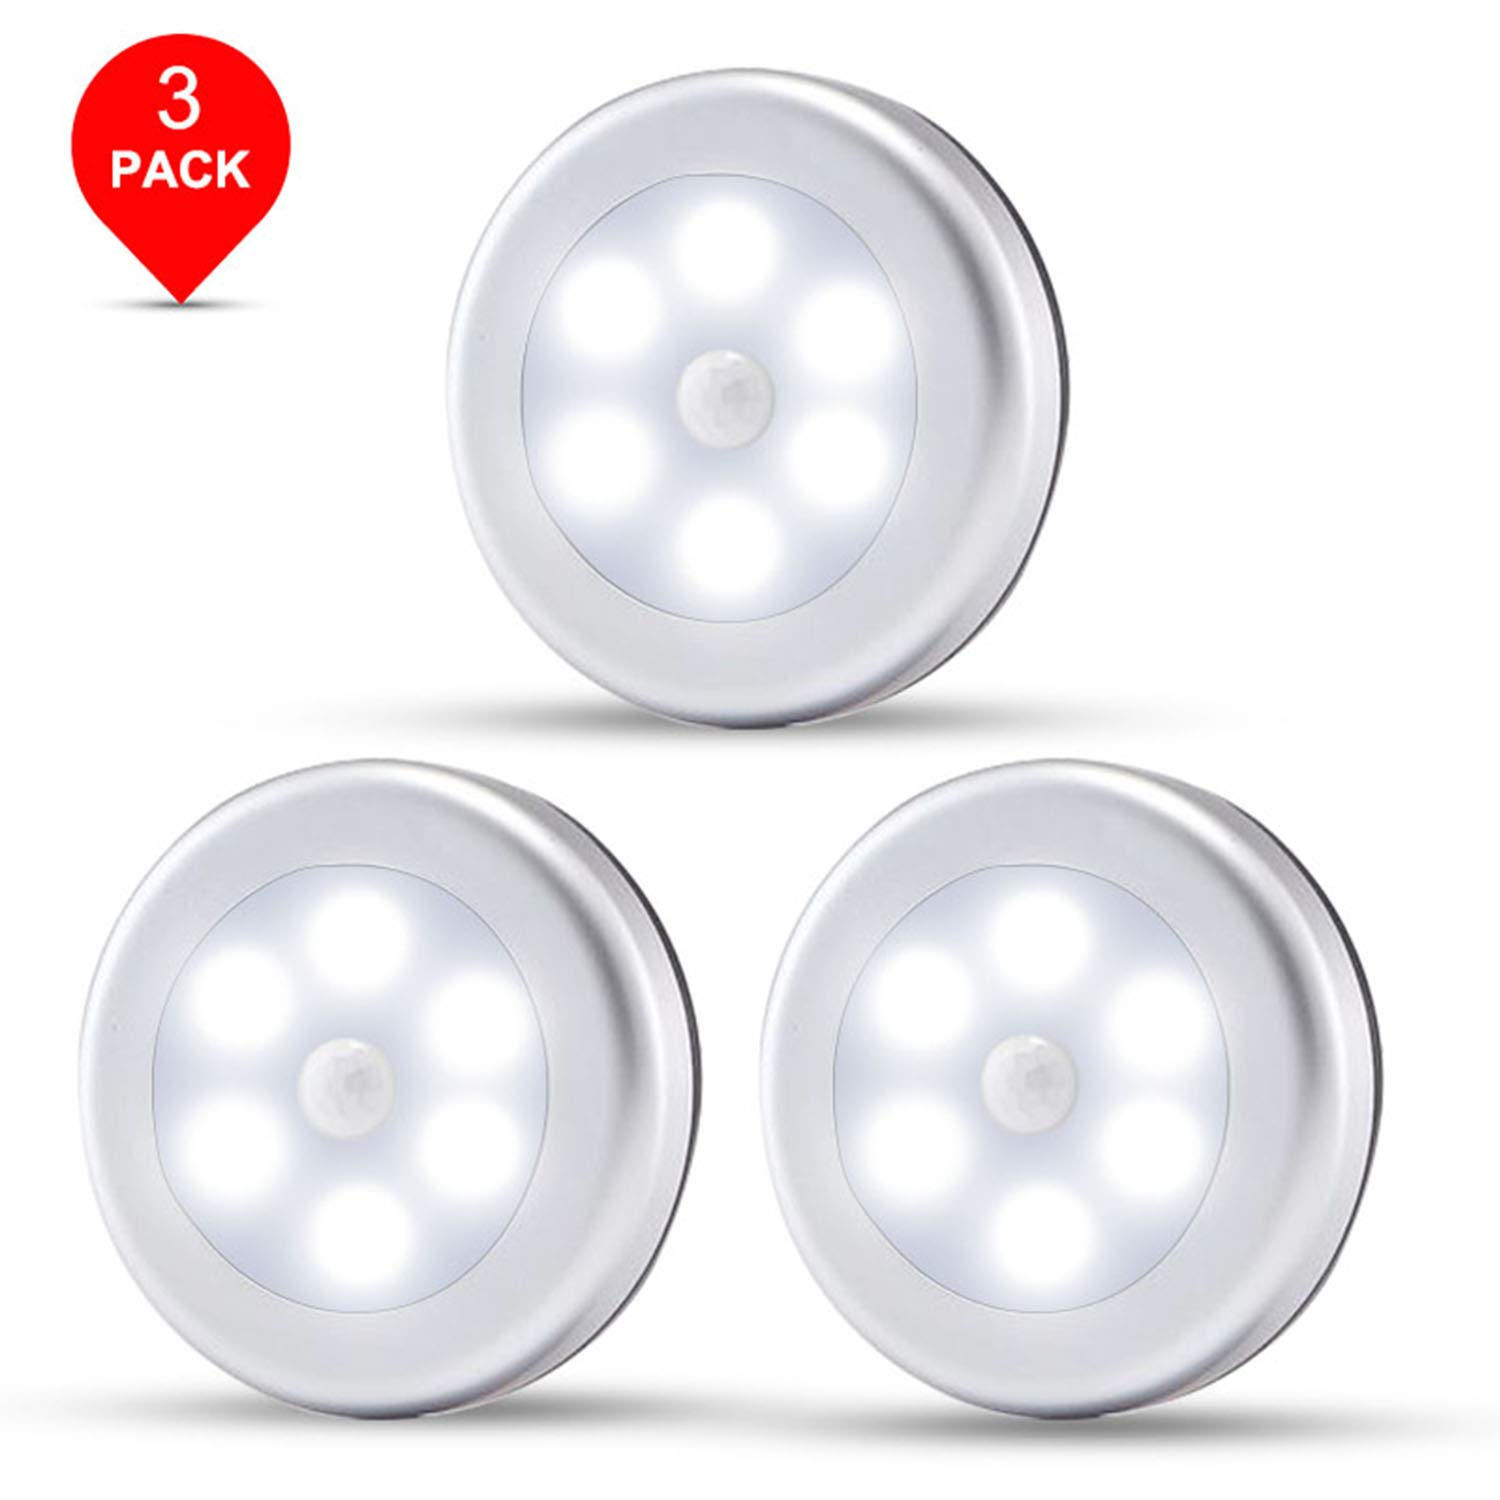 Motion Sensor Light, Wireless Battery Powered LED Night Lights Stick Anywhere Lamp for Home, Kitchen, Hallway, Cabinet, Closet, Stair, Bathroom (3-Pack White Light)